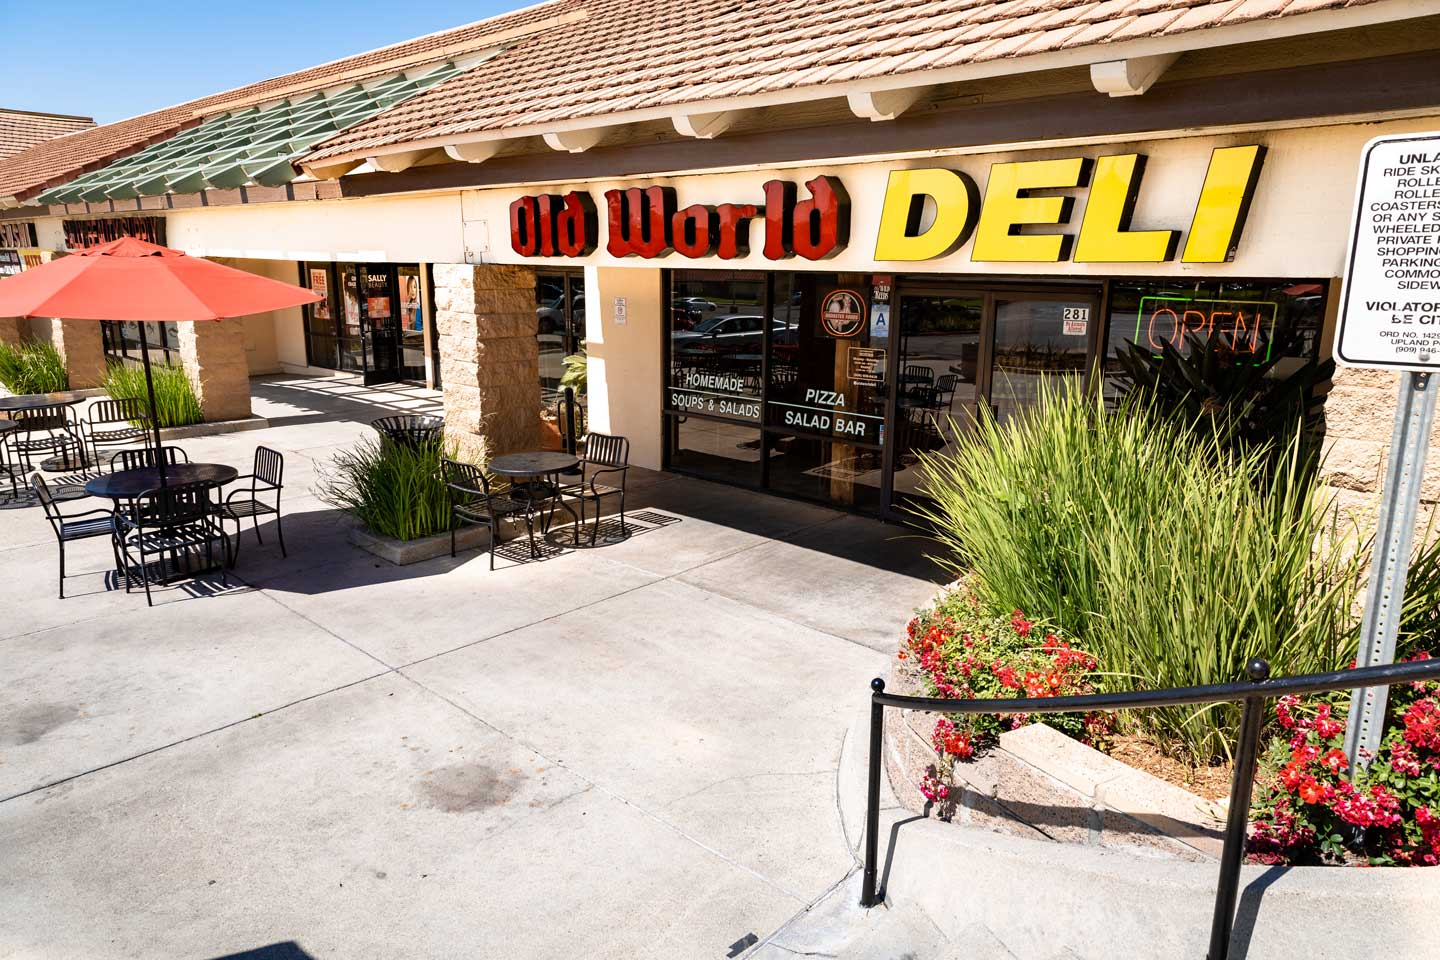 Old World Deli Upland California